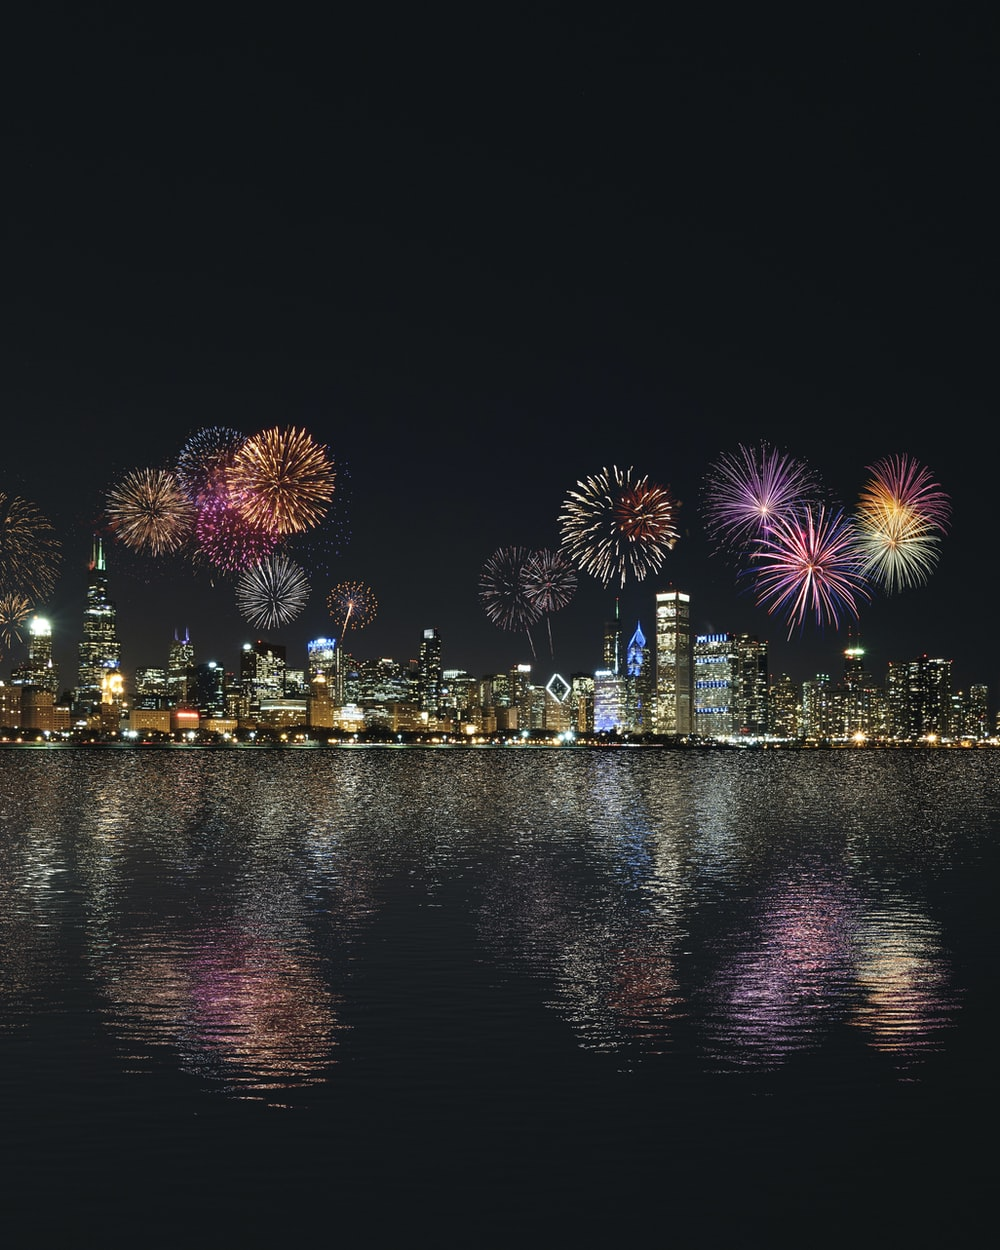 skyline buildings under fireworks display